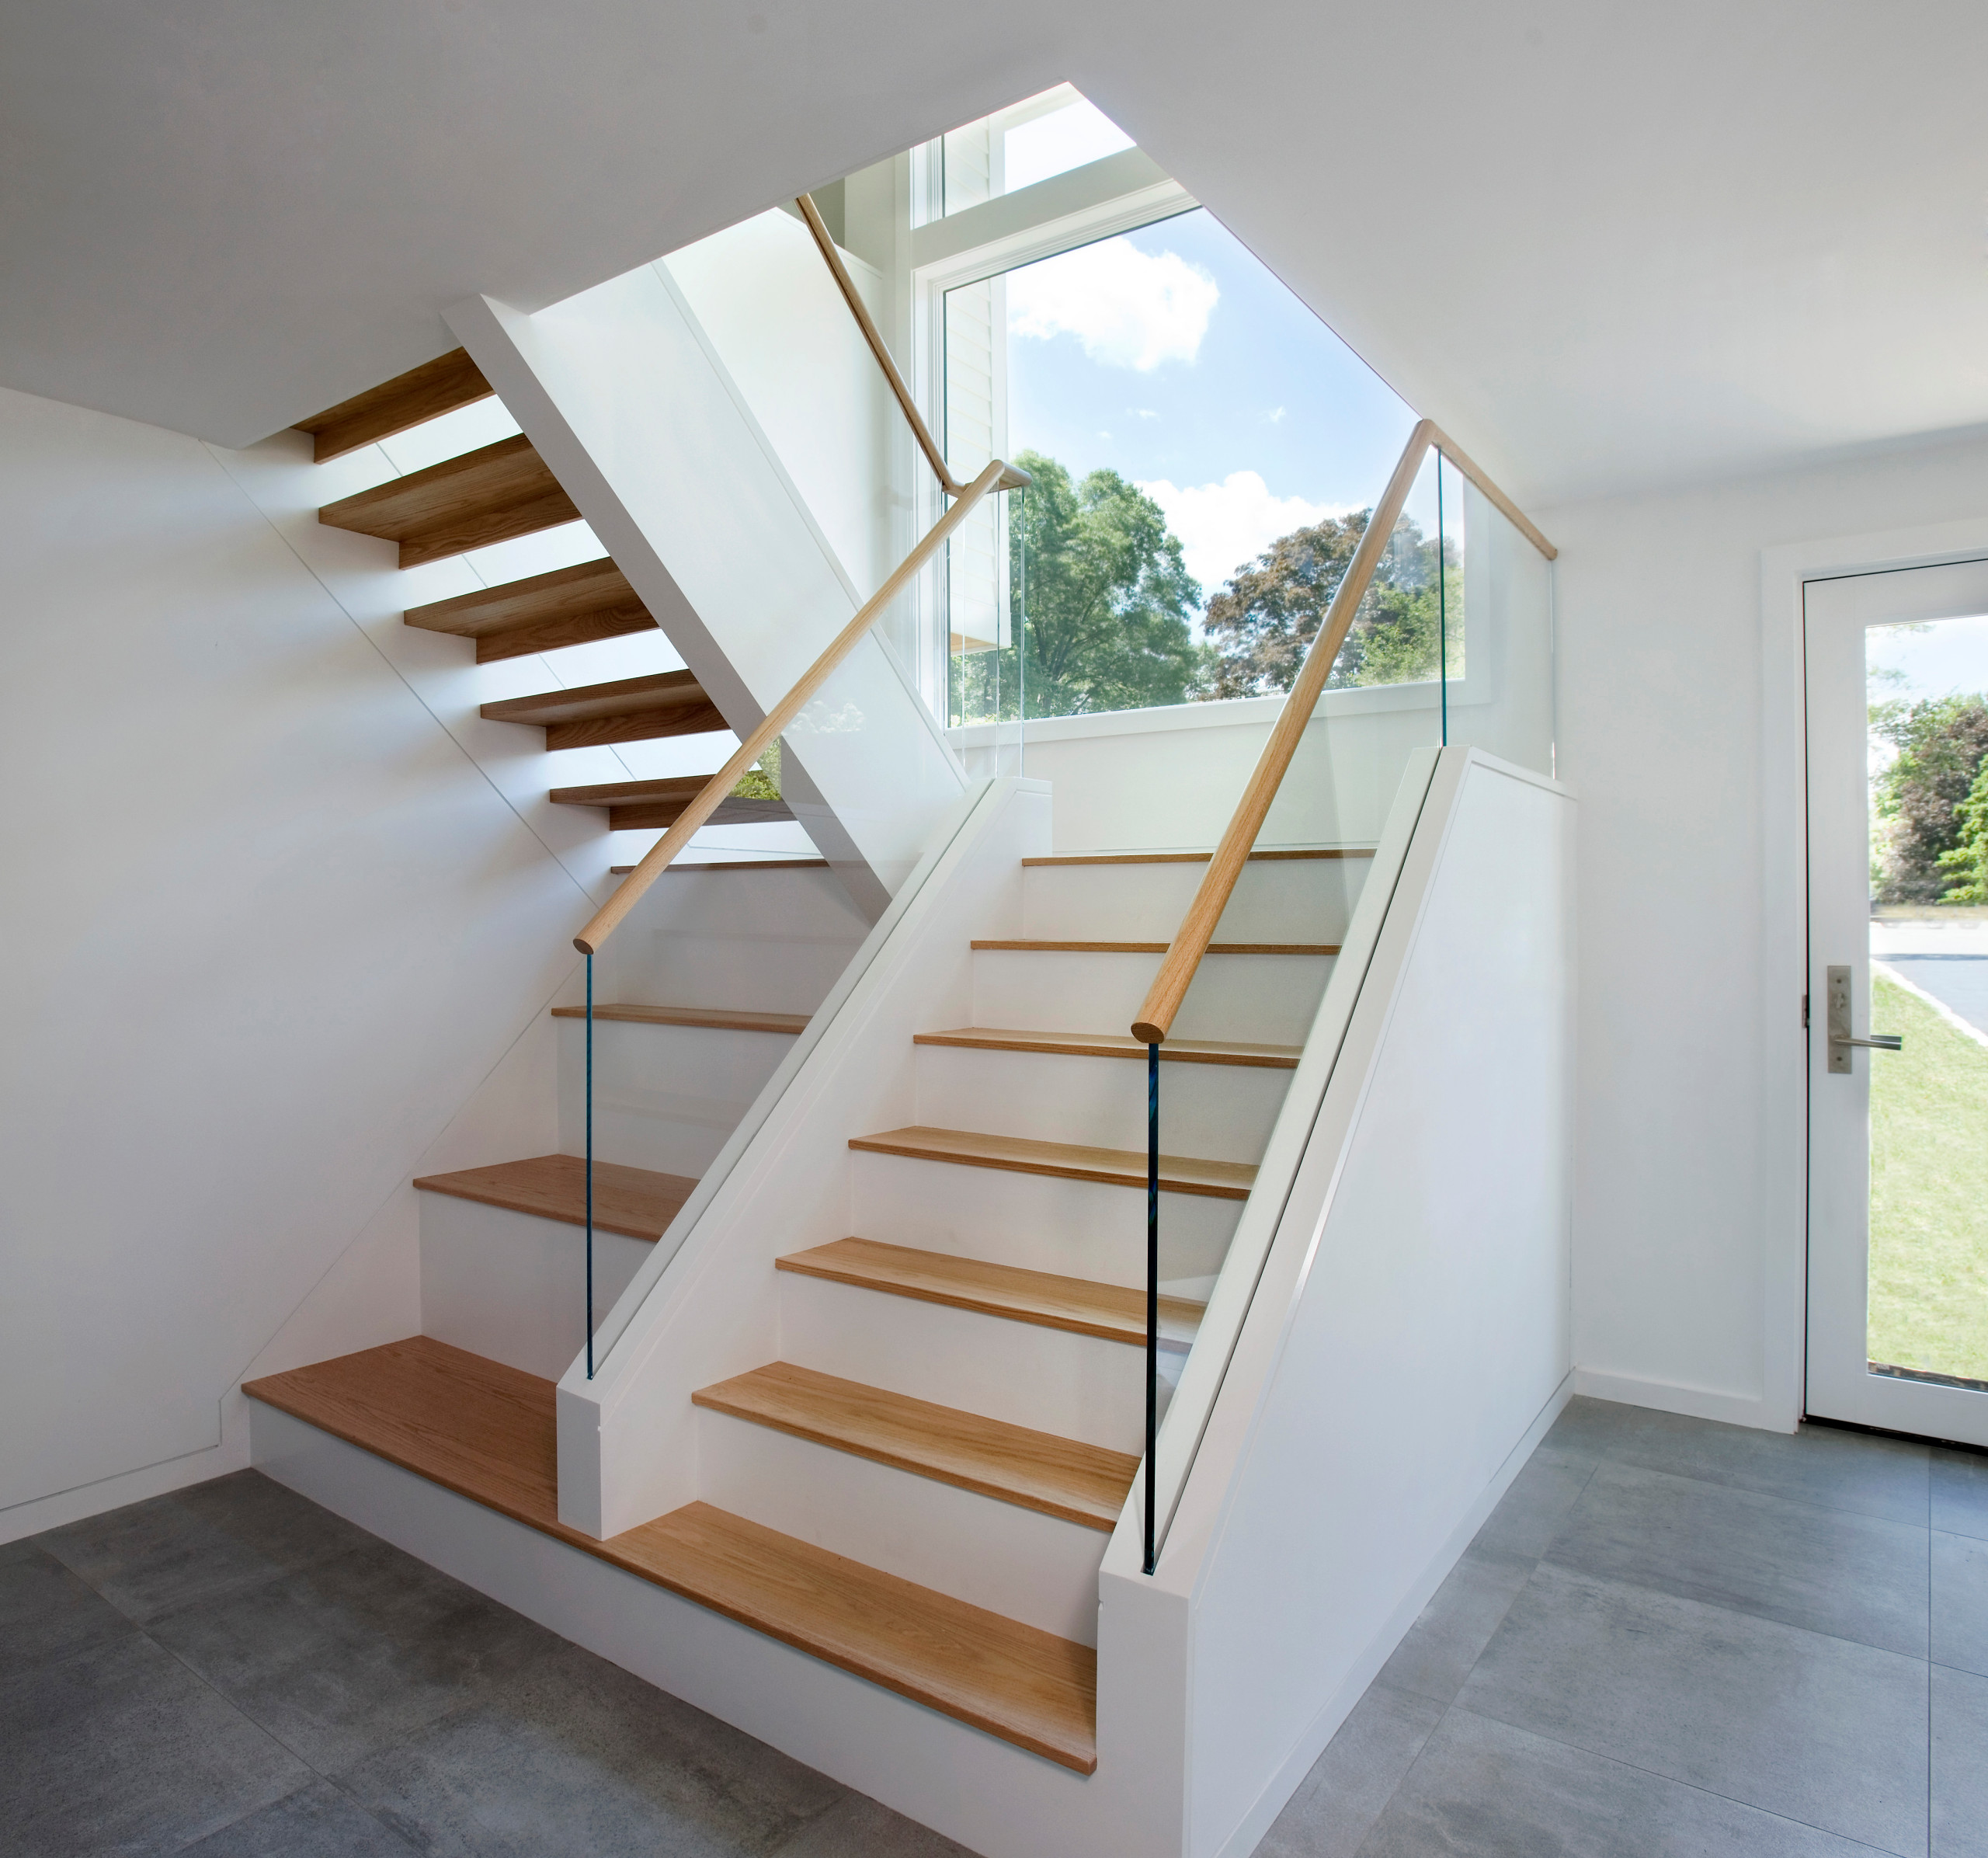 Stair with bench and storage